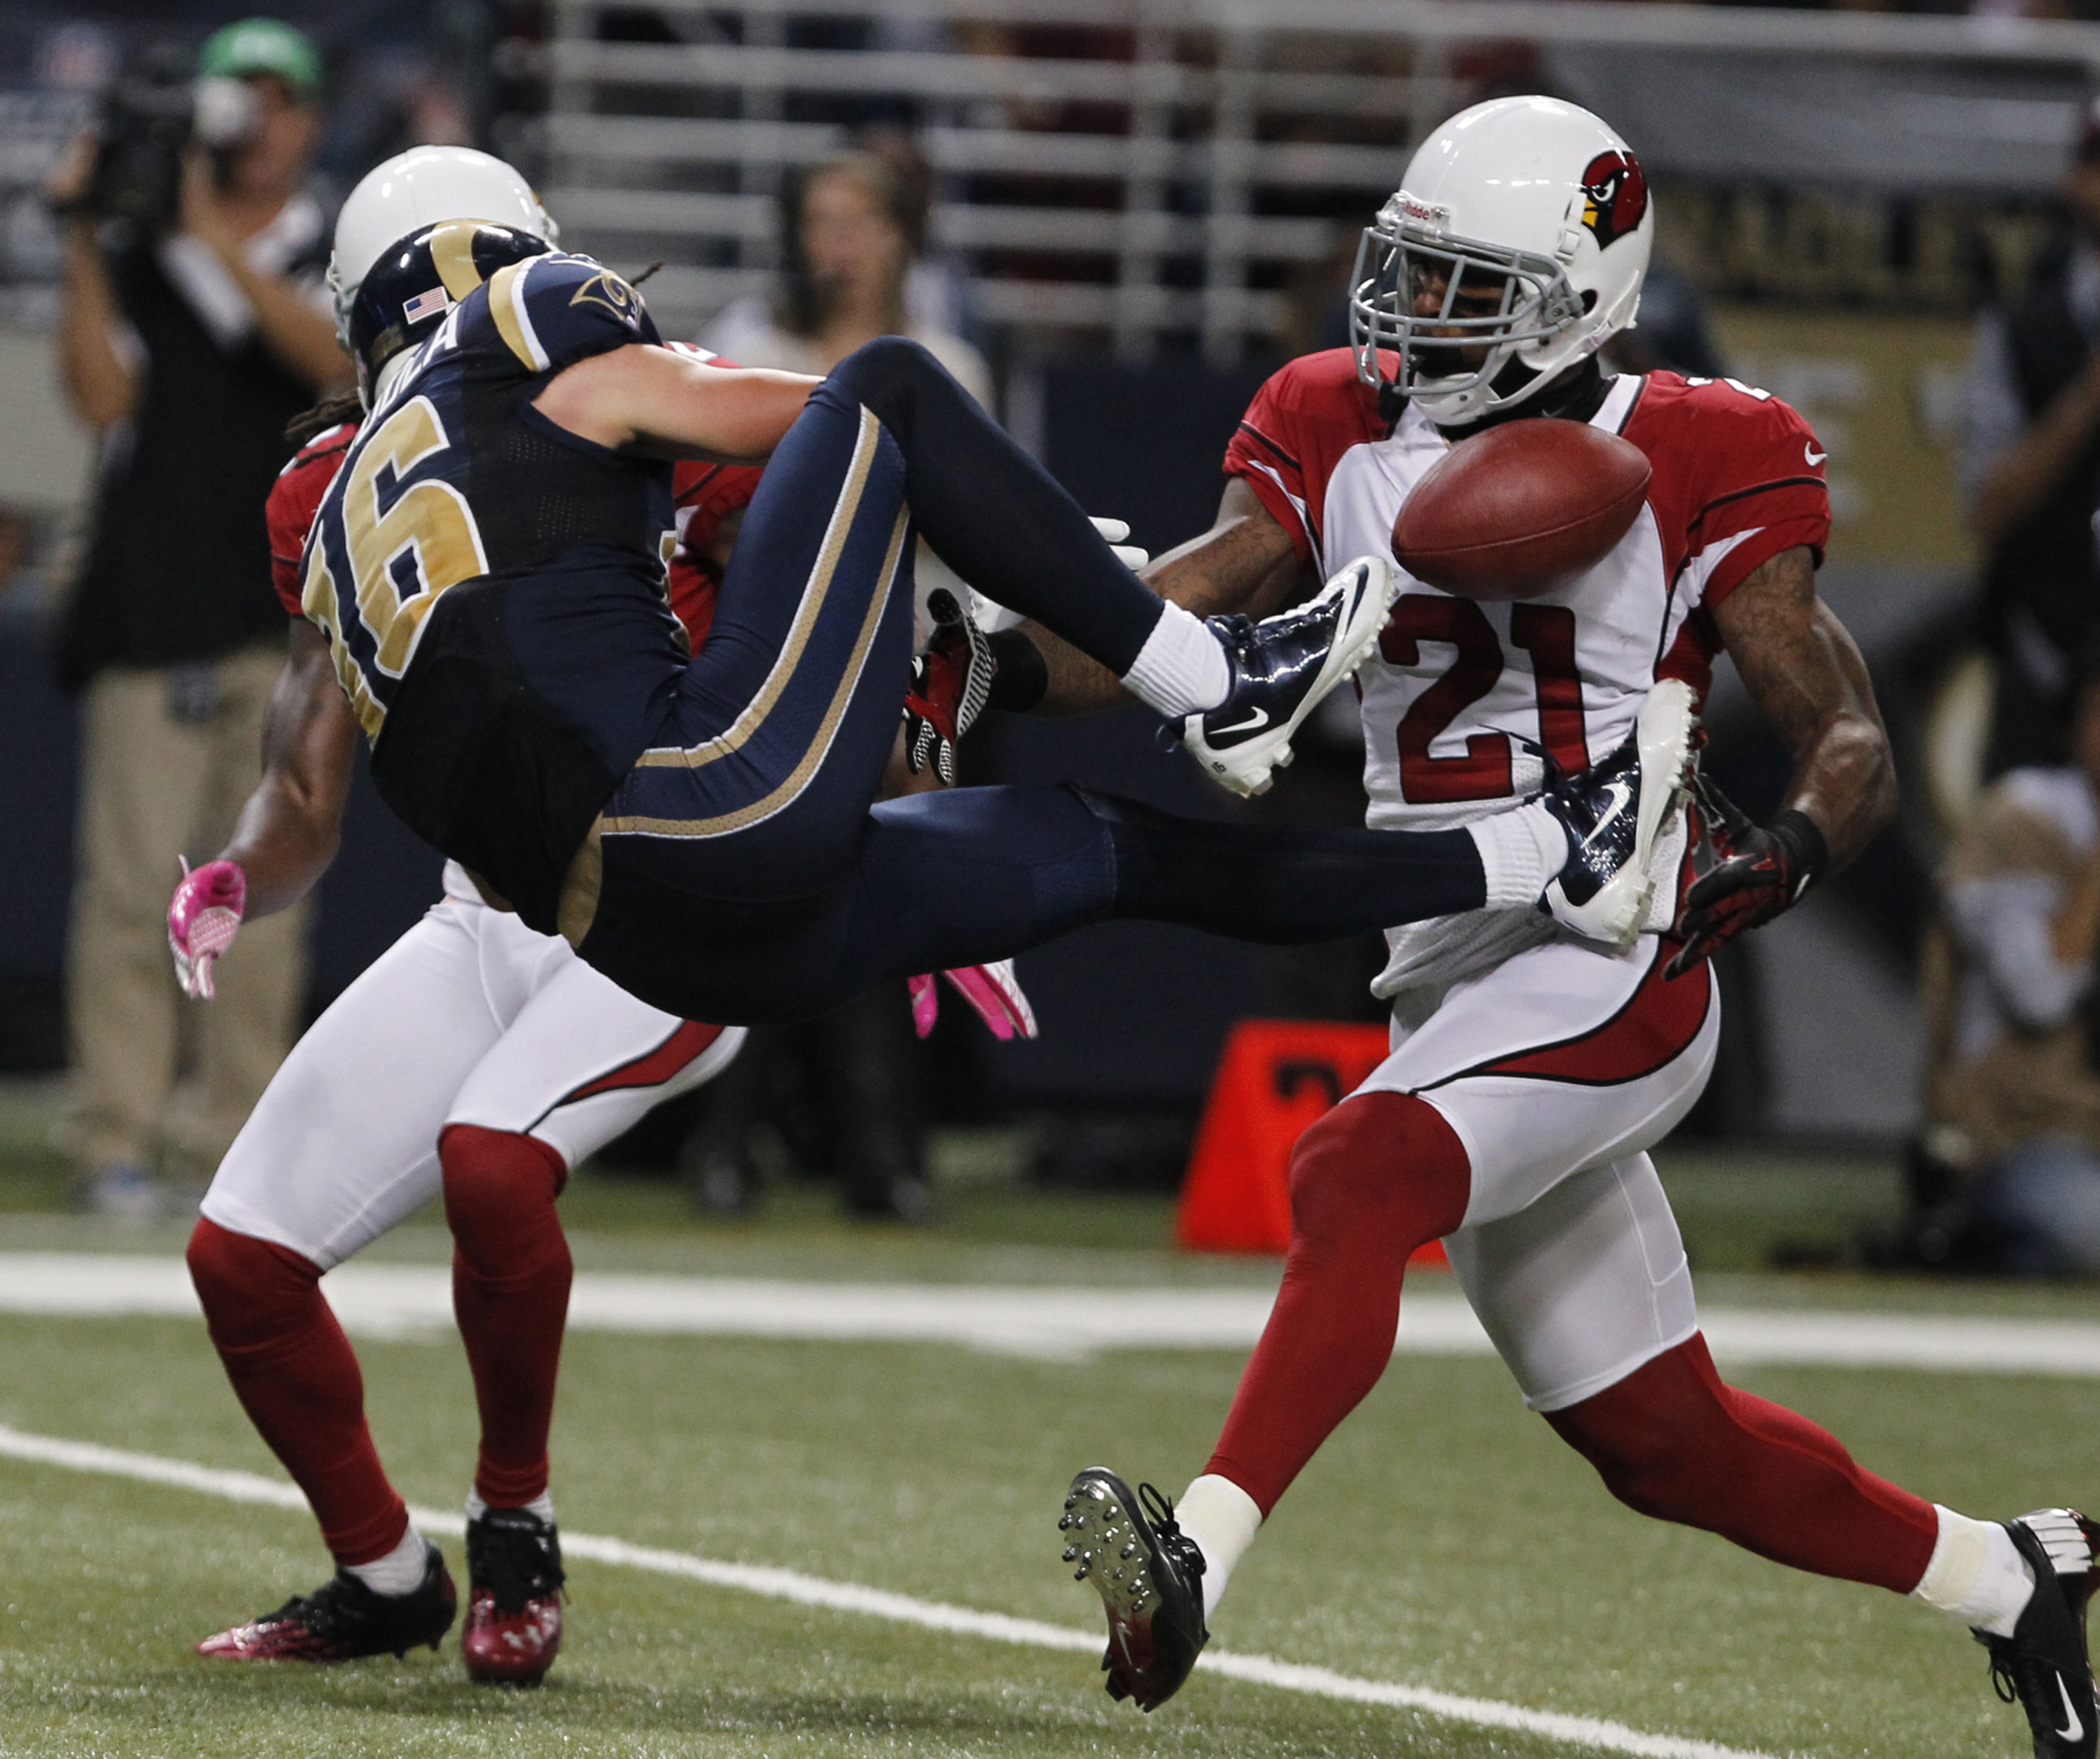 The Cardinals' Patrick Peterson breaks up a pass intended for the Rams' Danny Amendola